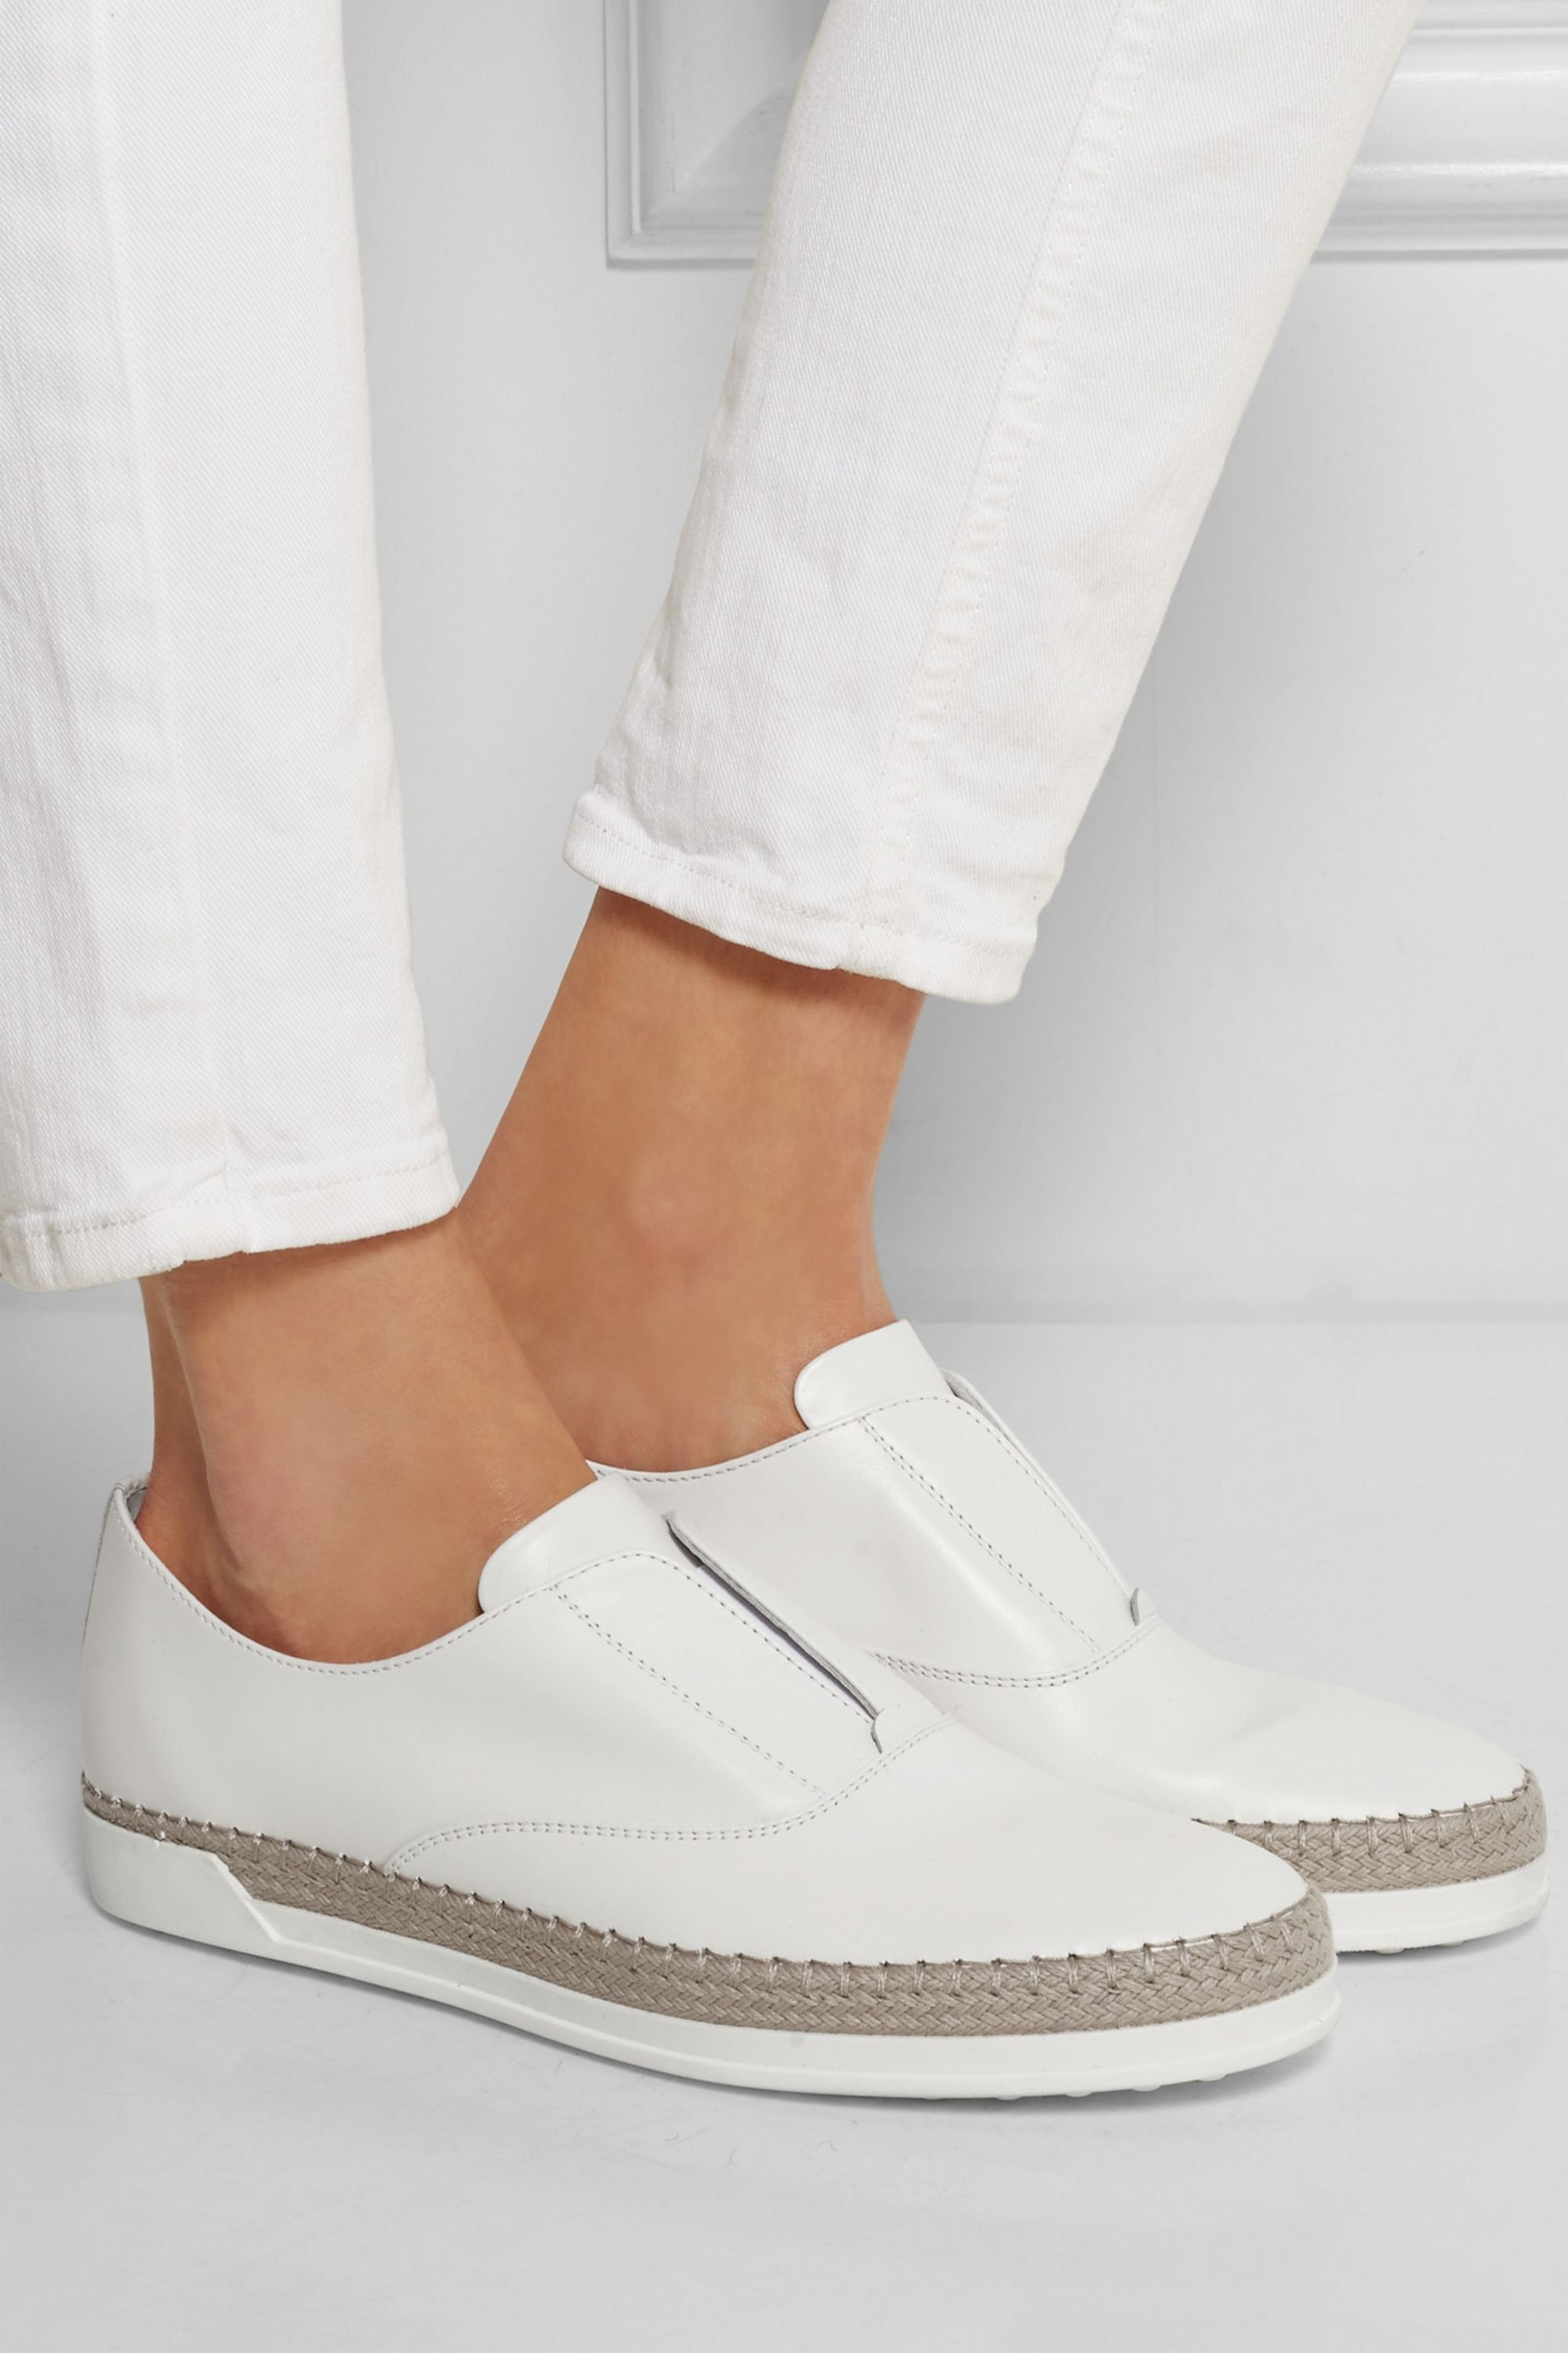 White Leather espadrille sneakers | Tod